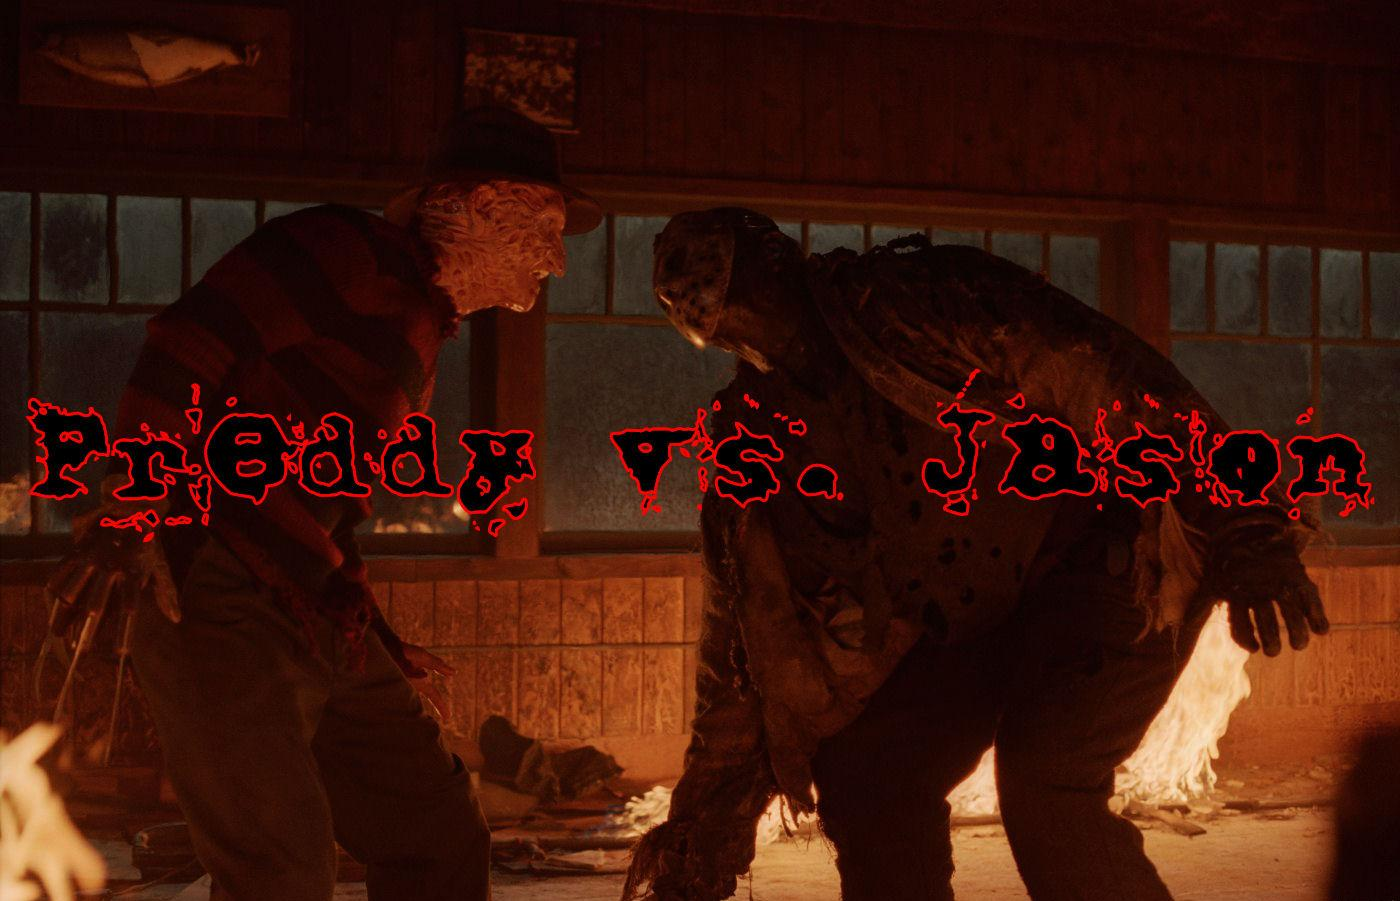 Freddy vs jason 6